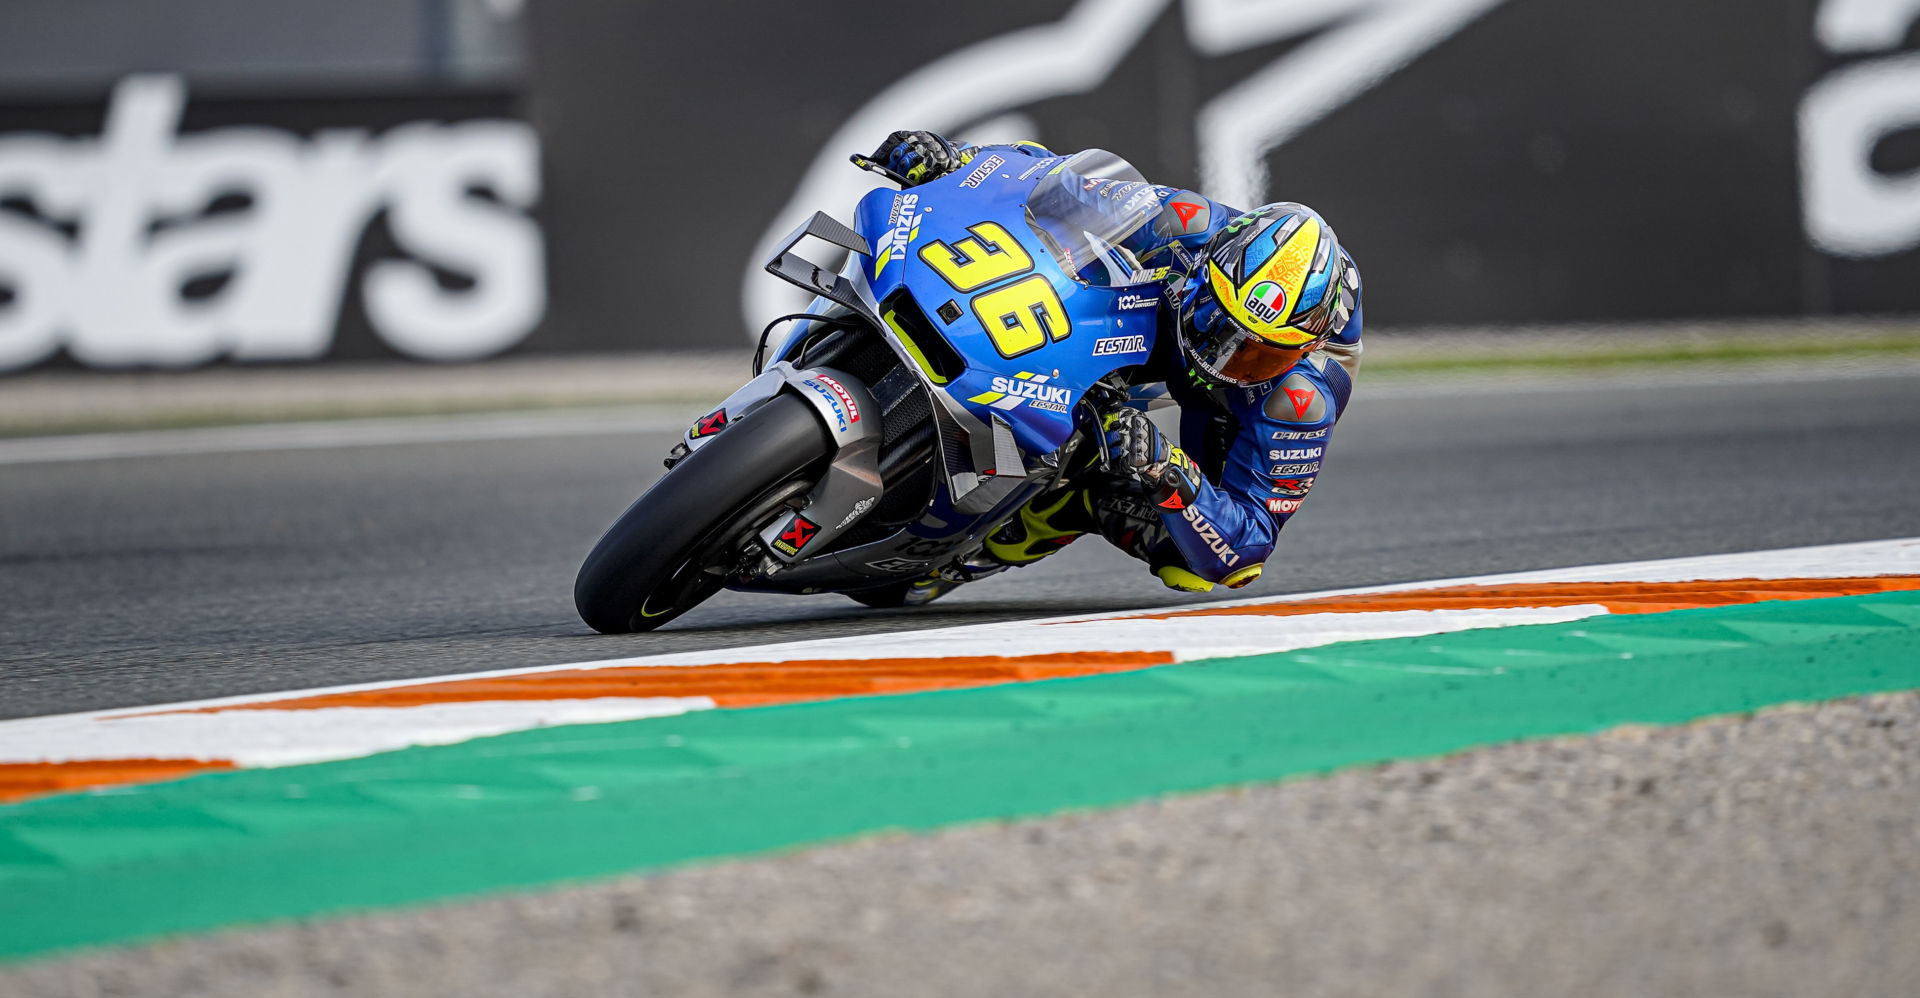 MotoGP World Championship point leader Joan Mir (36). Photo courtesy Team Suzuki ECSTAR.